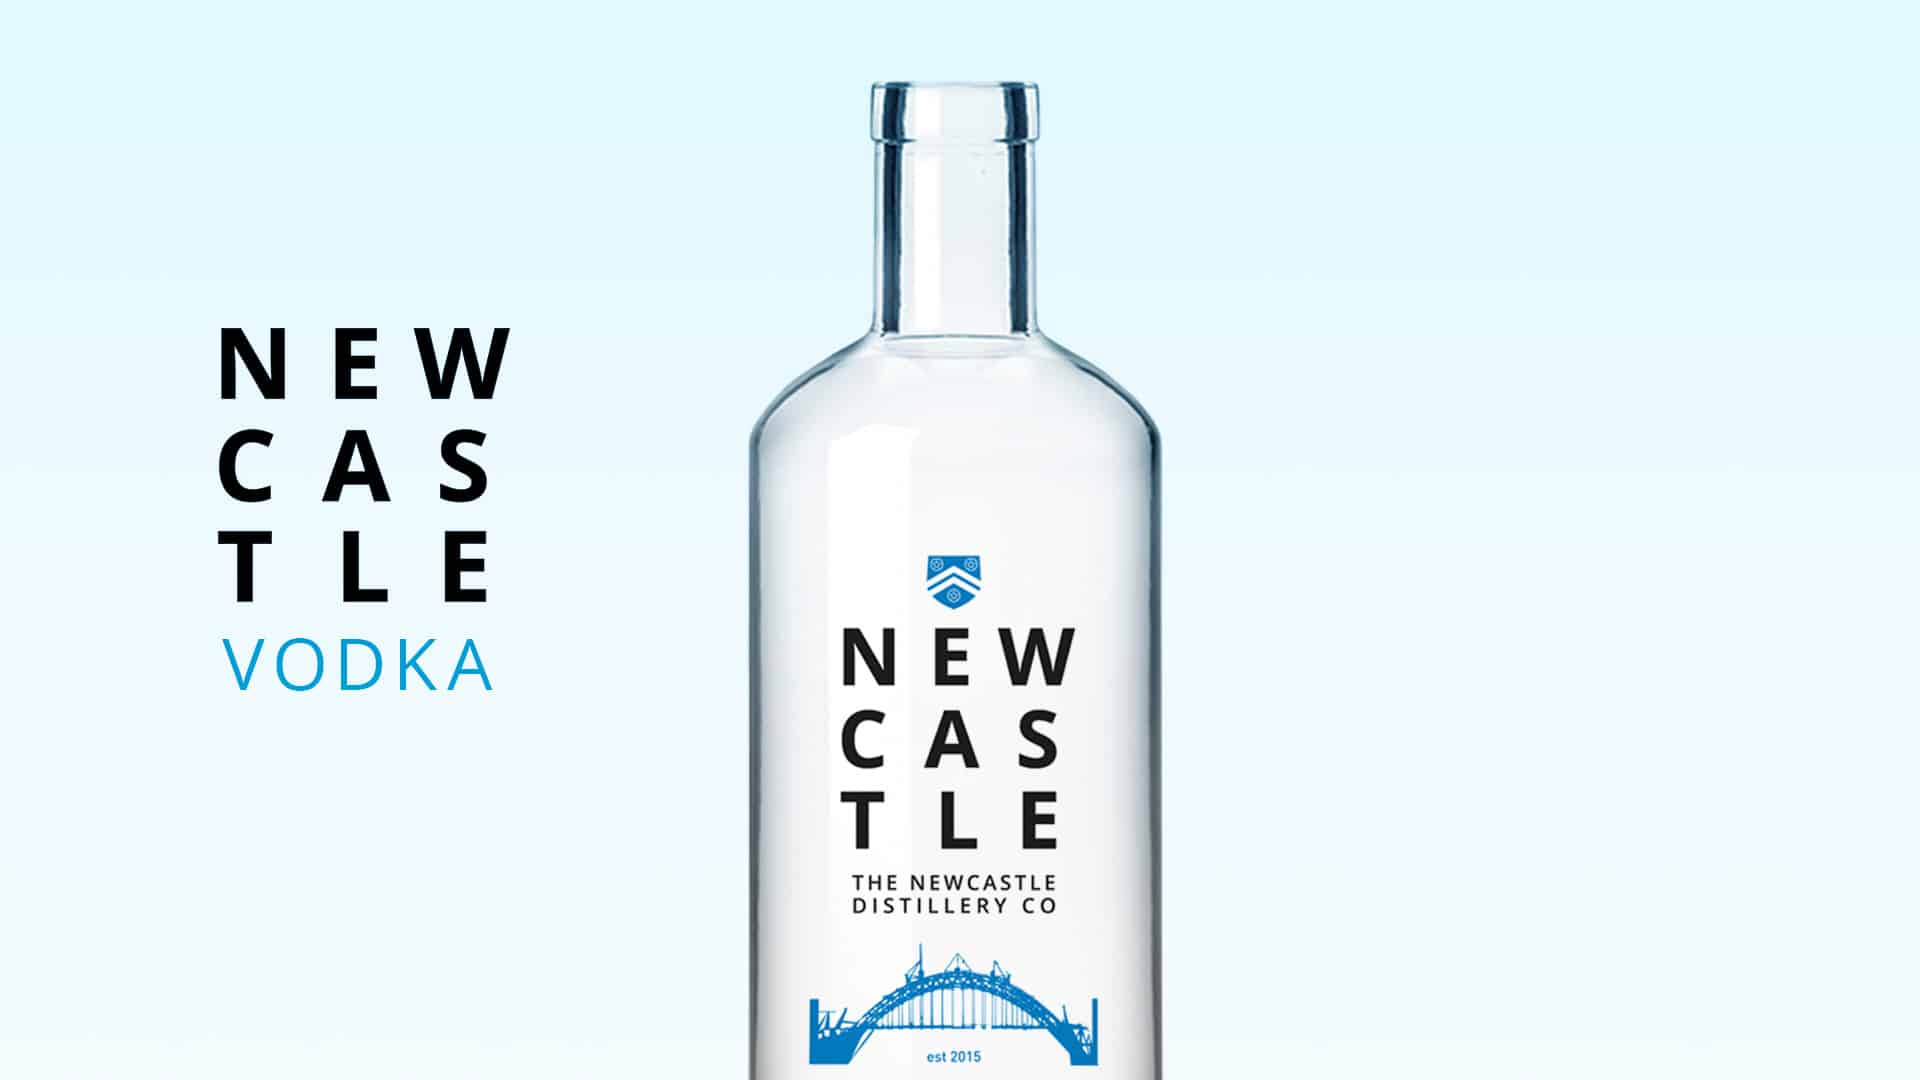 Newcastle Distillery Co - Vodka - Case Study